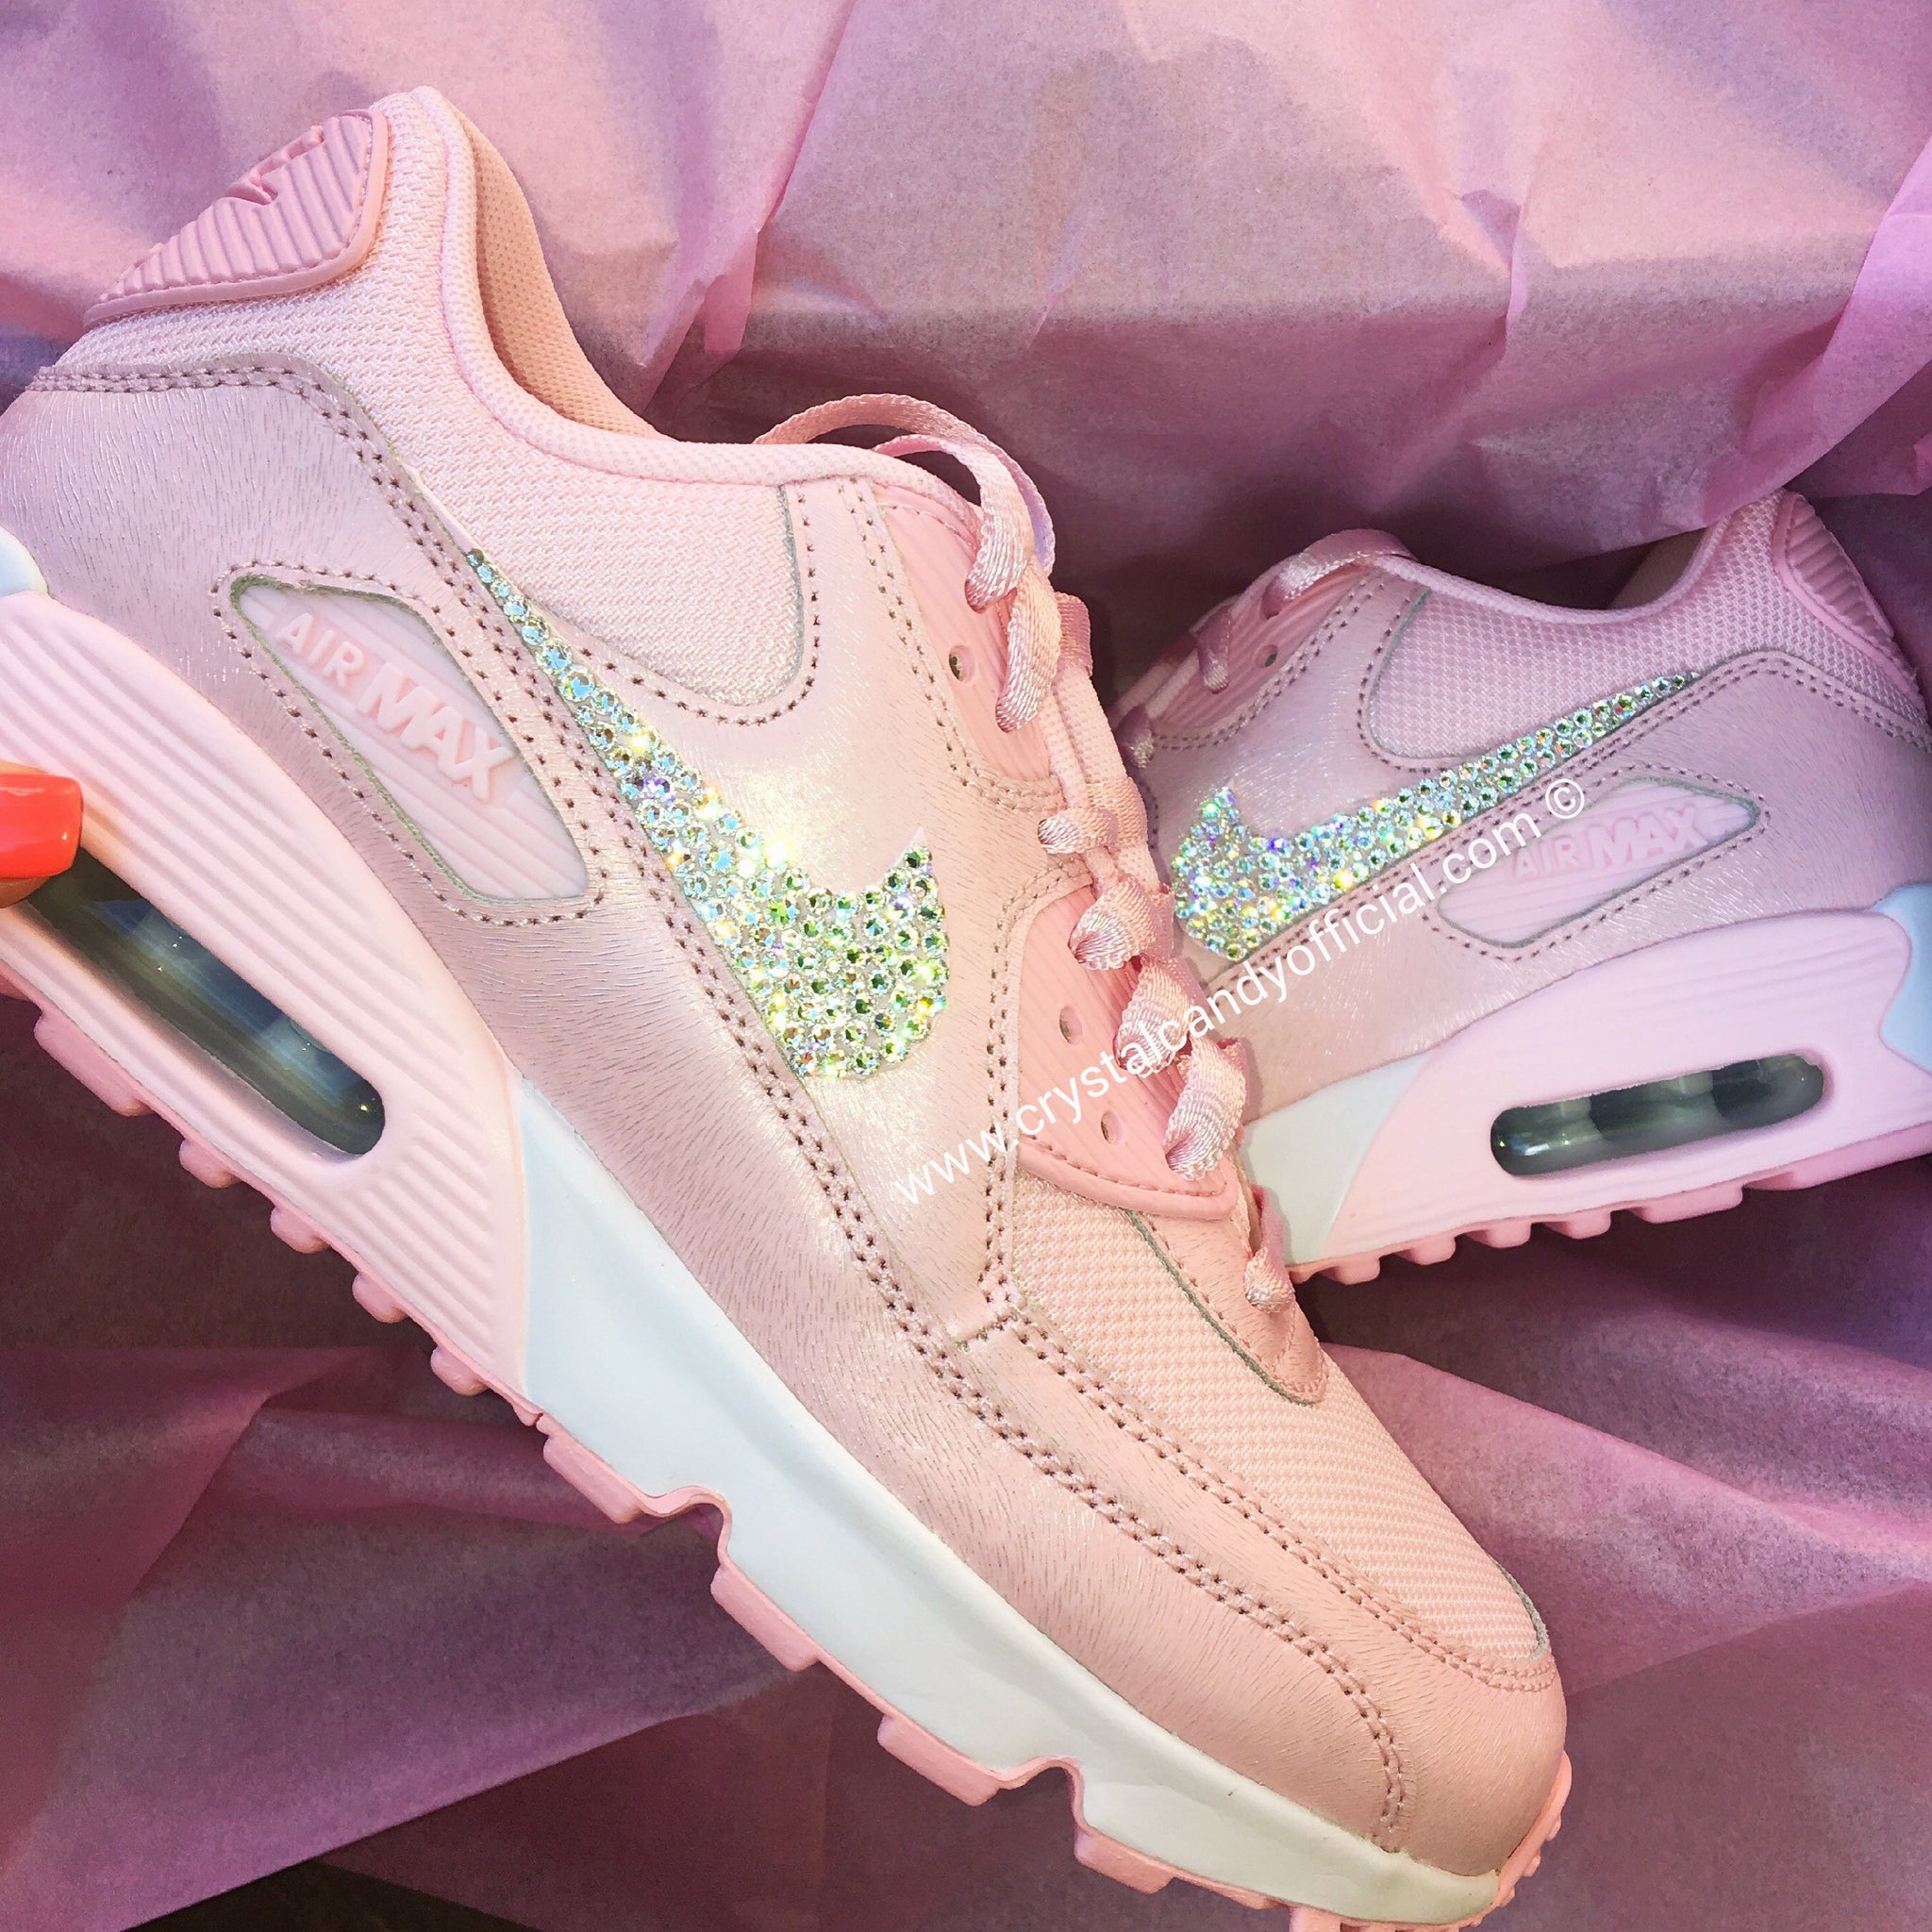 1f93e8ceffd CRYSTAL NIKE AIR MAX 90's IN BABY PINK